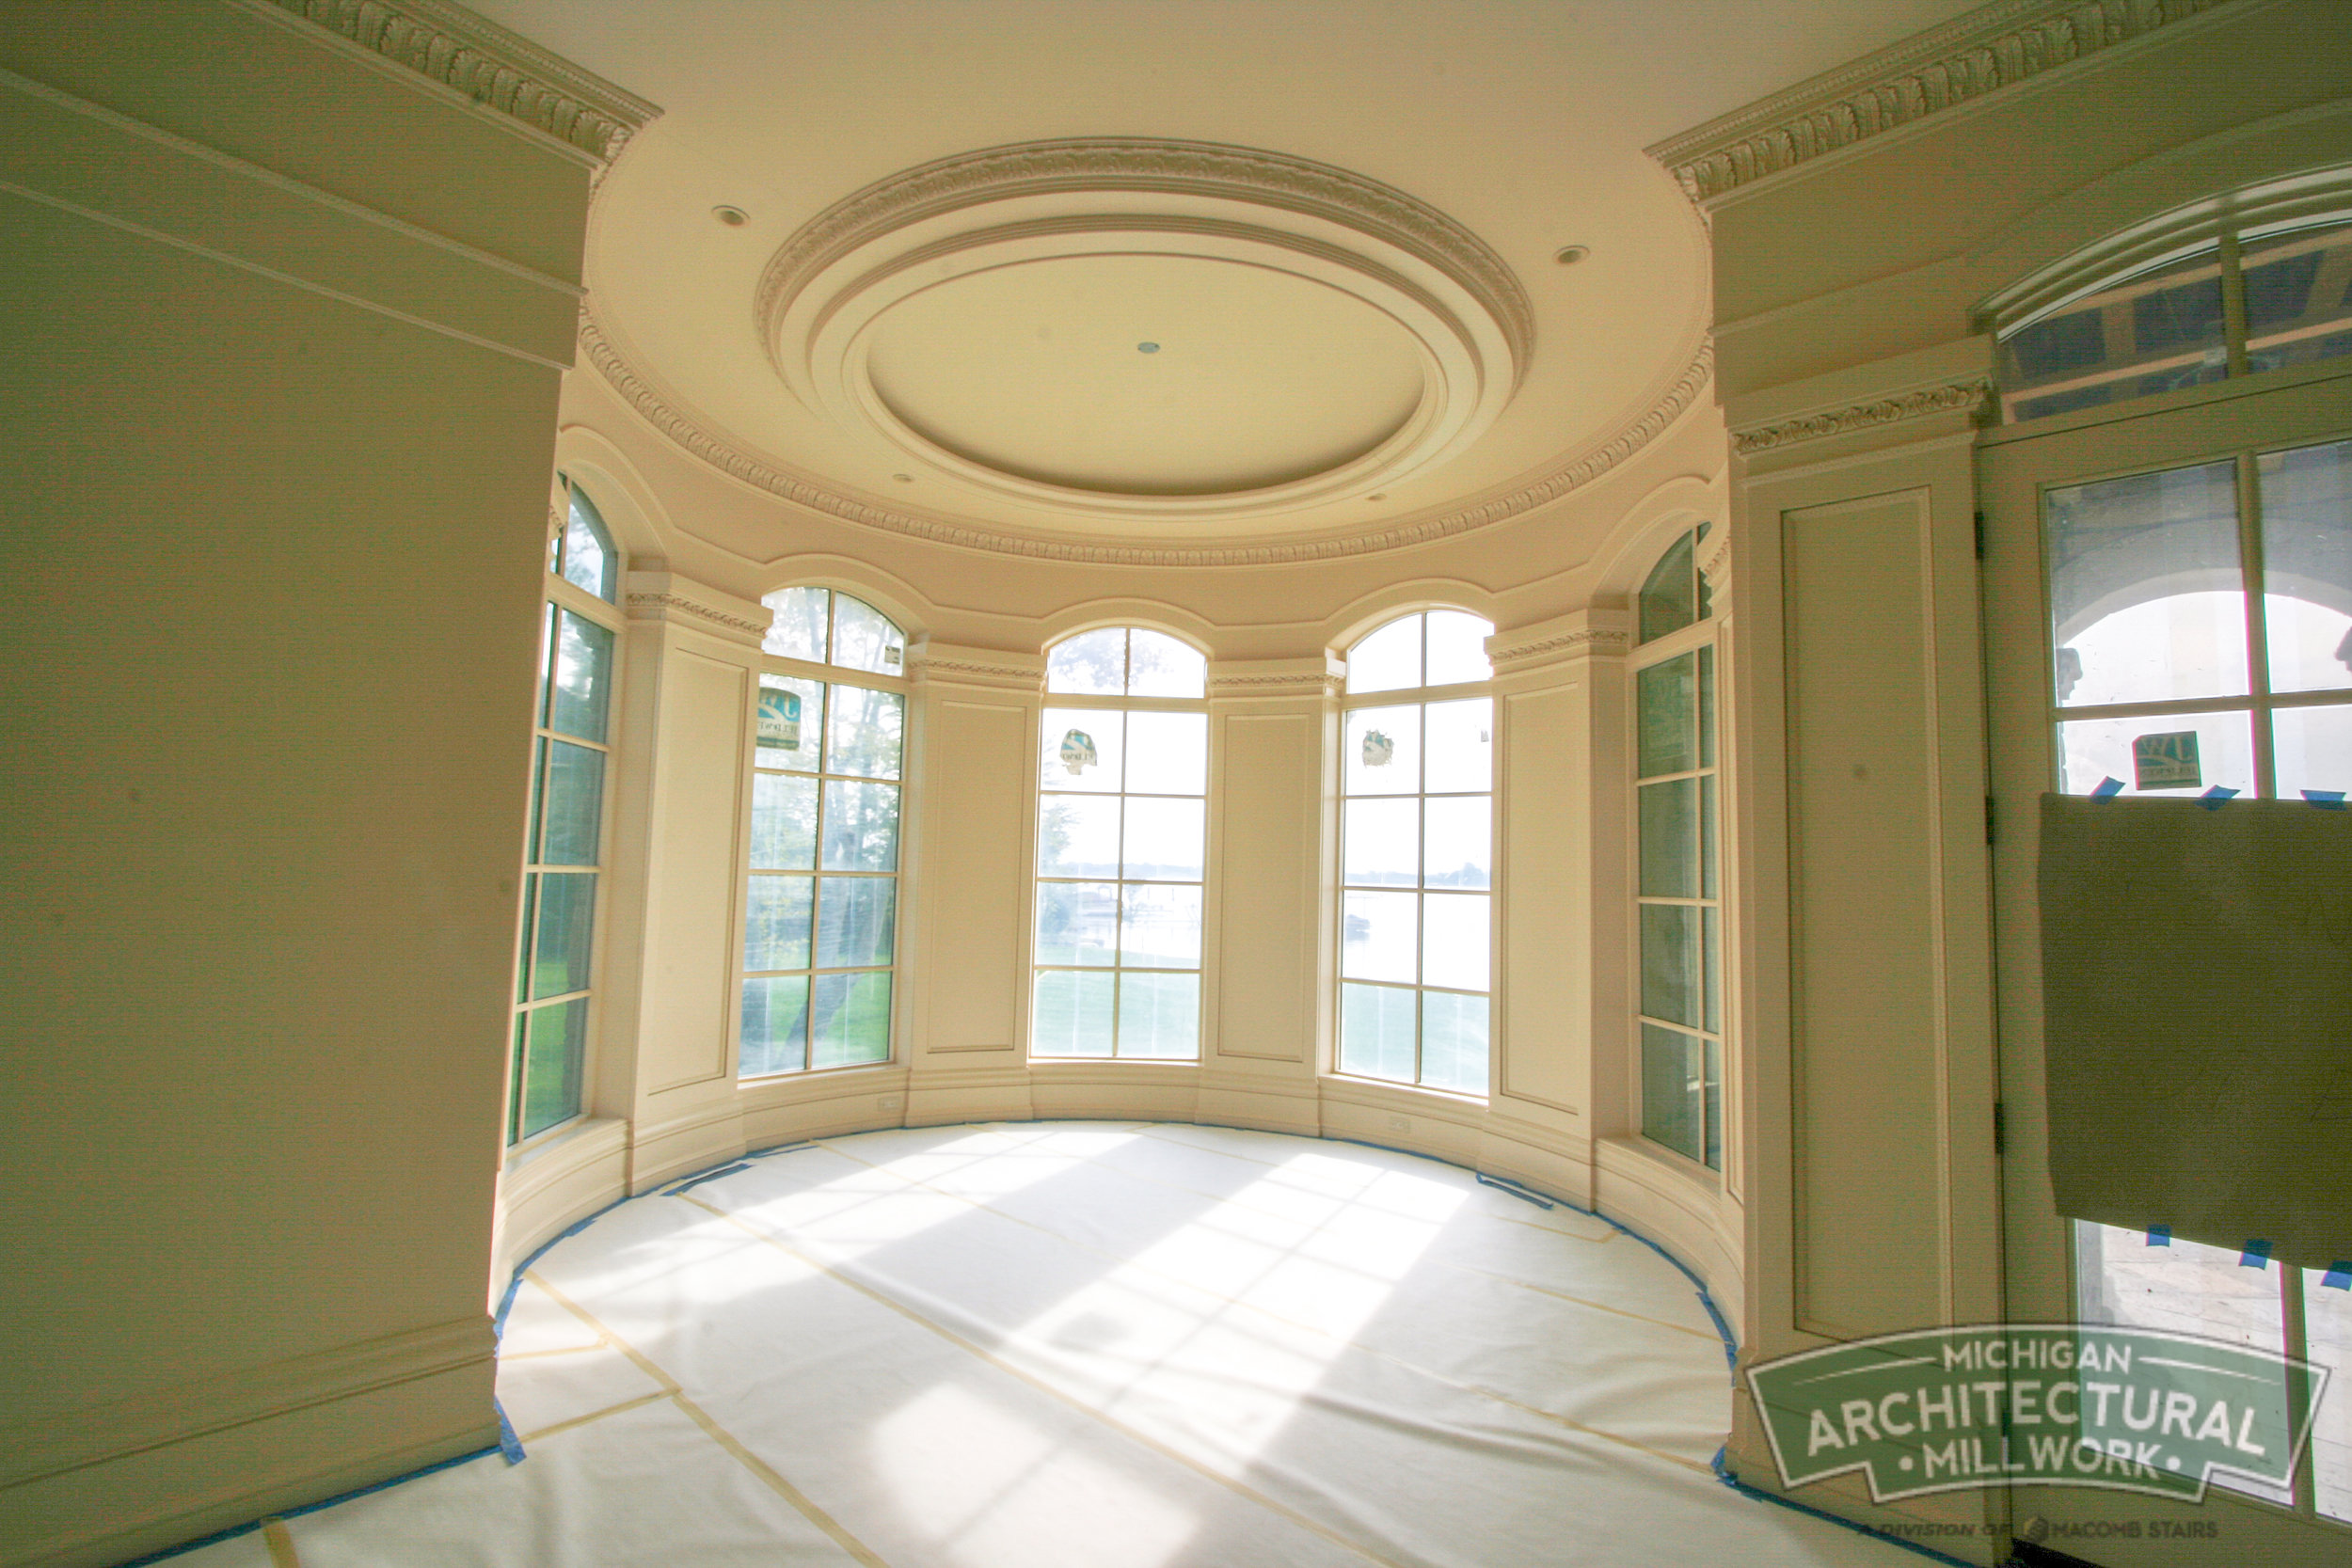 Michigan Architectural Millwork- Moulding and Millwork Photo-179.jpg